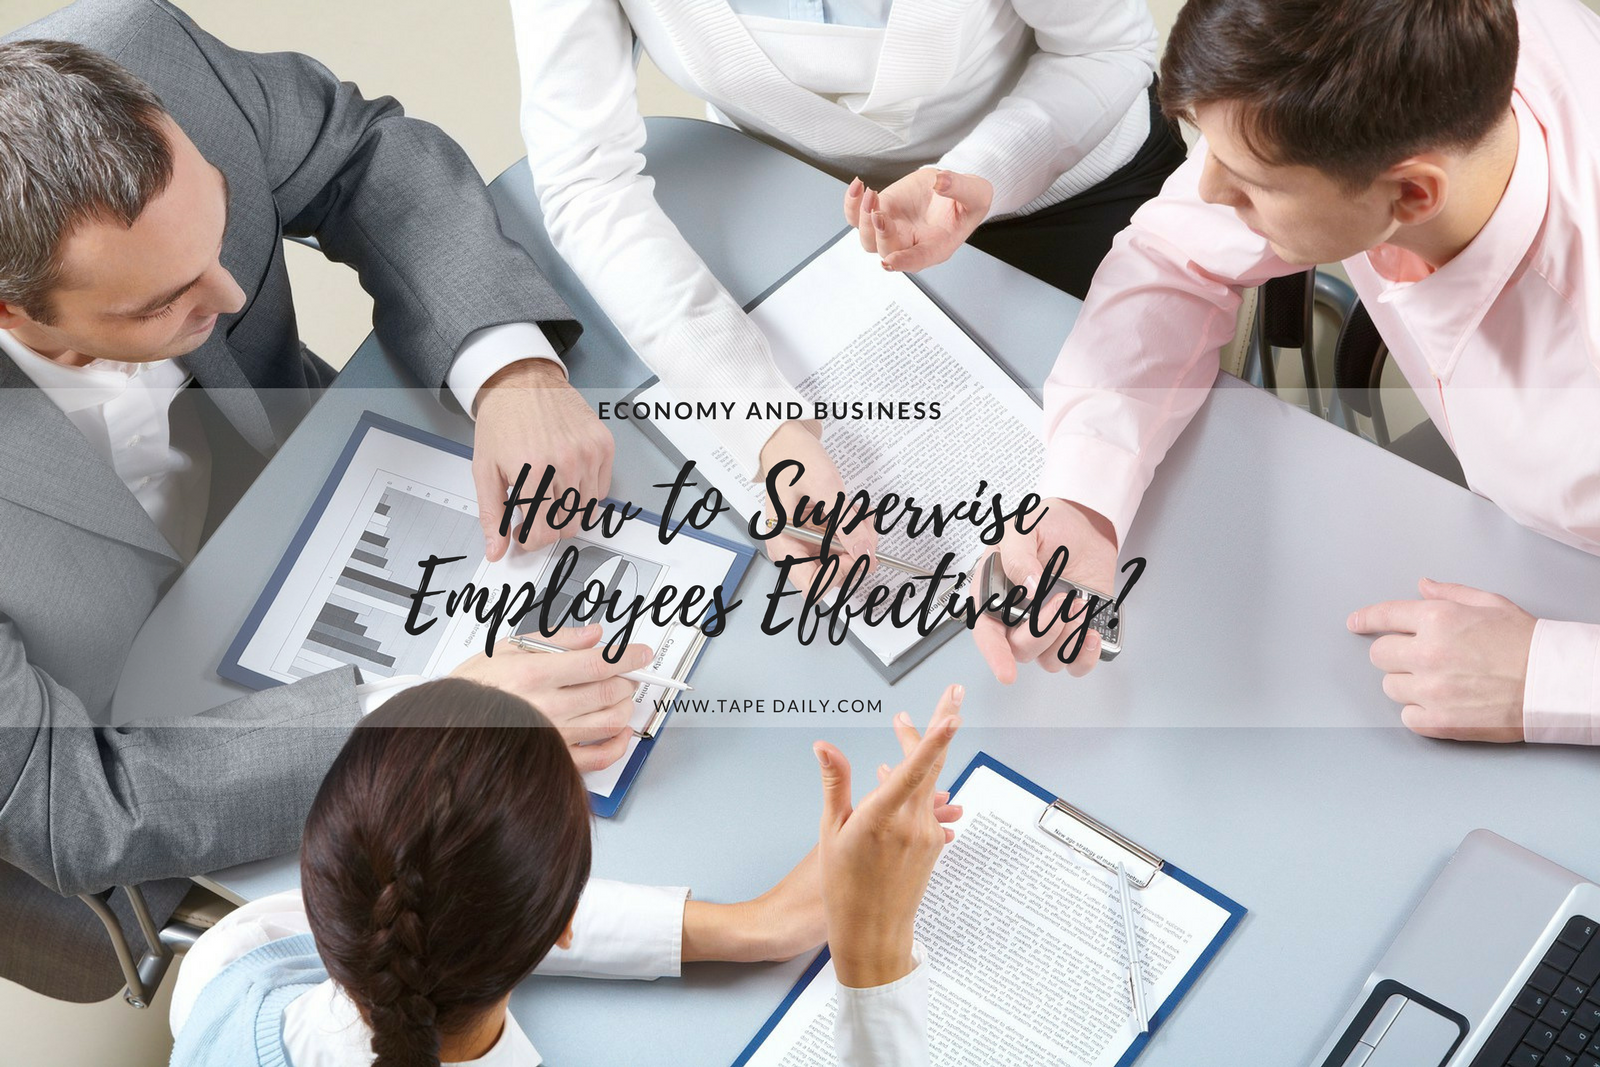 How to supervise employees effectively